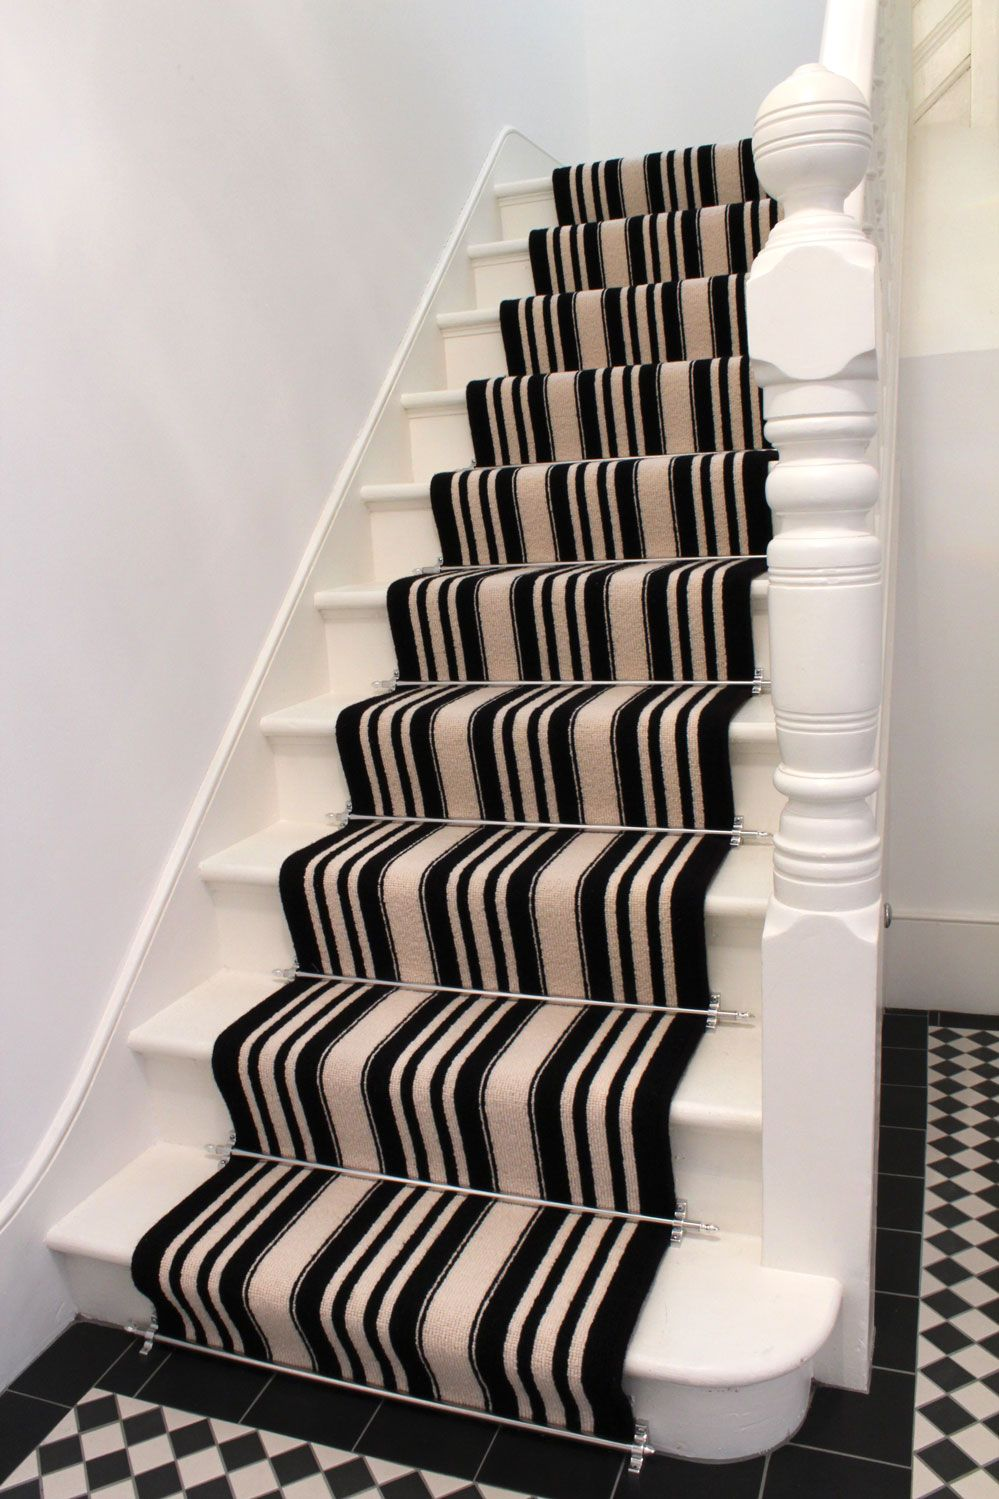 Best Striped Carpet Black White With Stair Rods Carpet 400 x 300